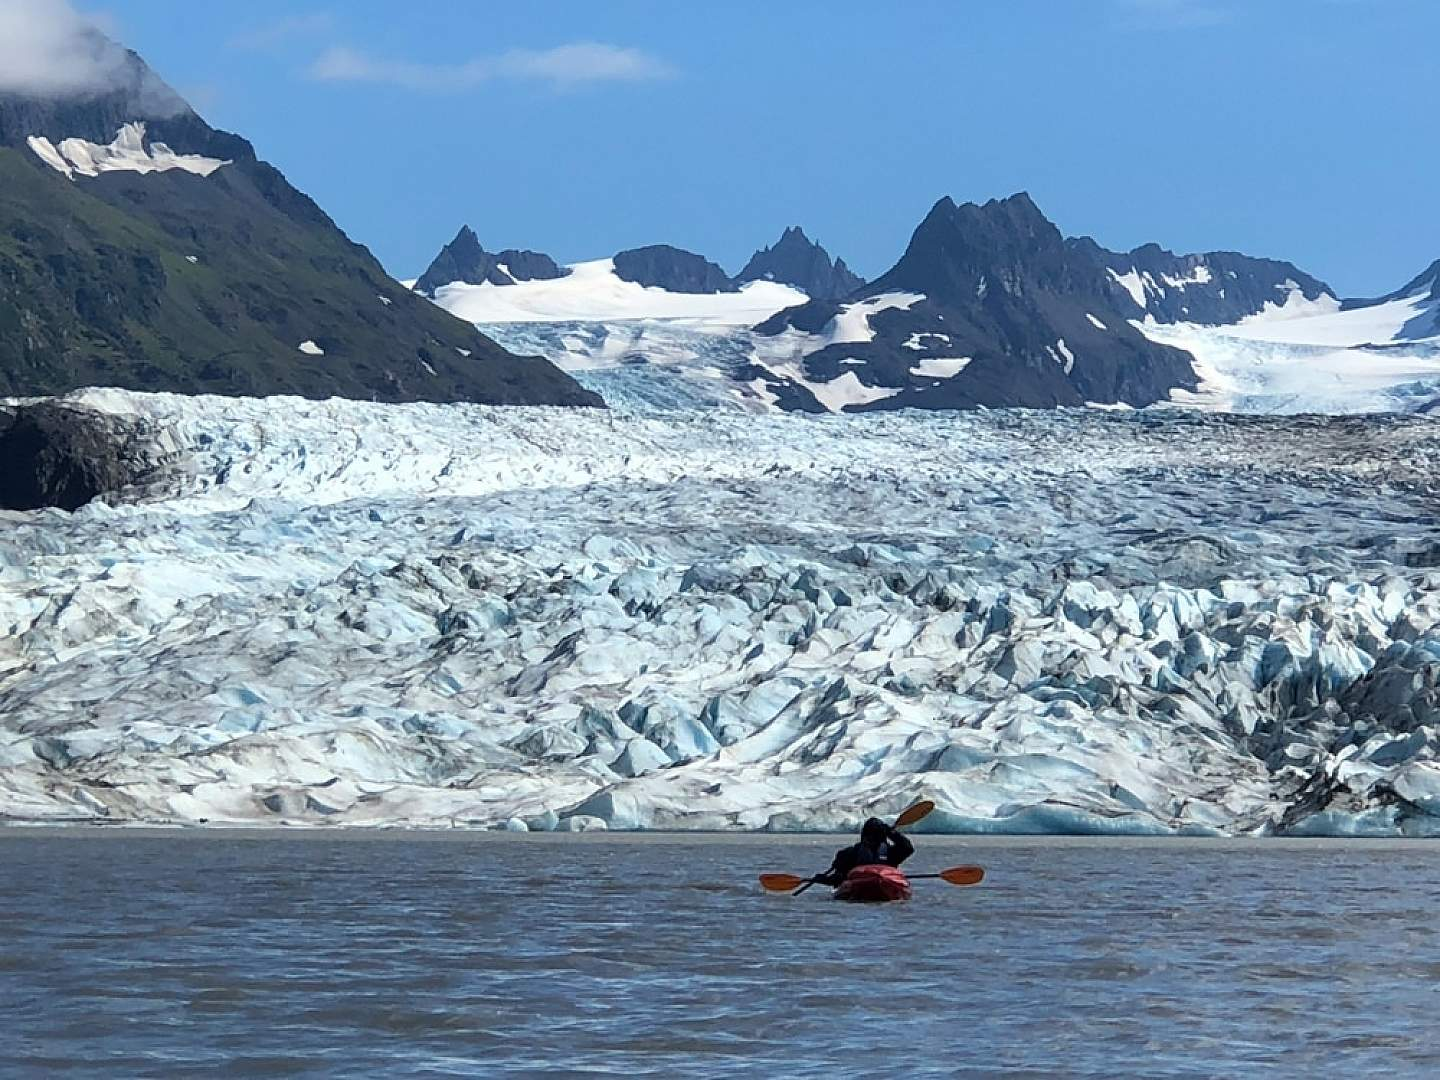 Kayakers on the water close to a glacier